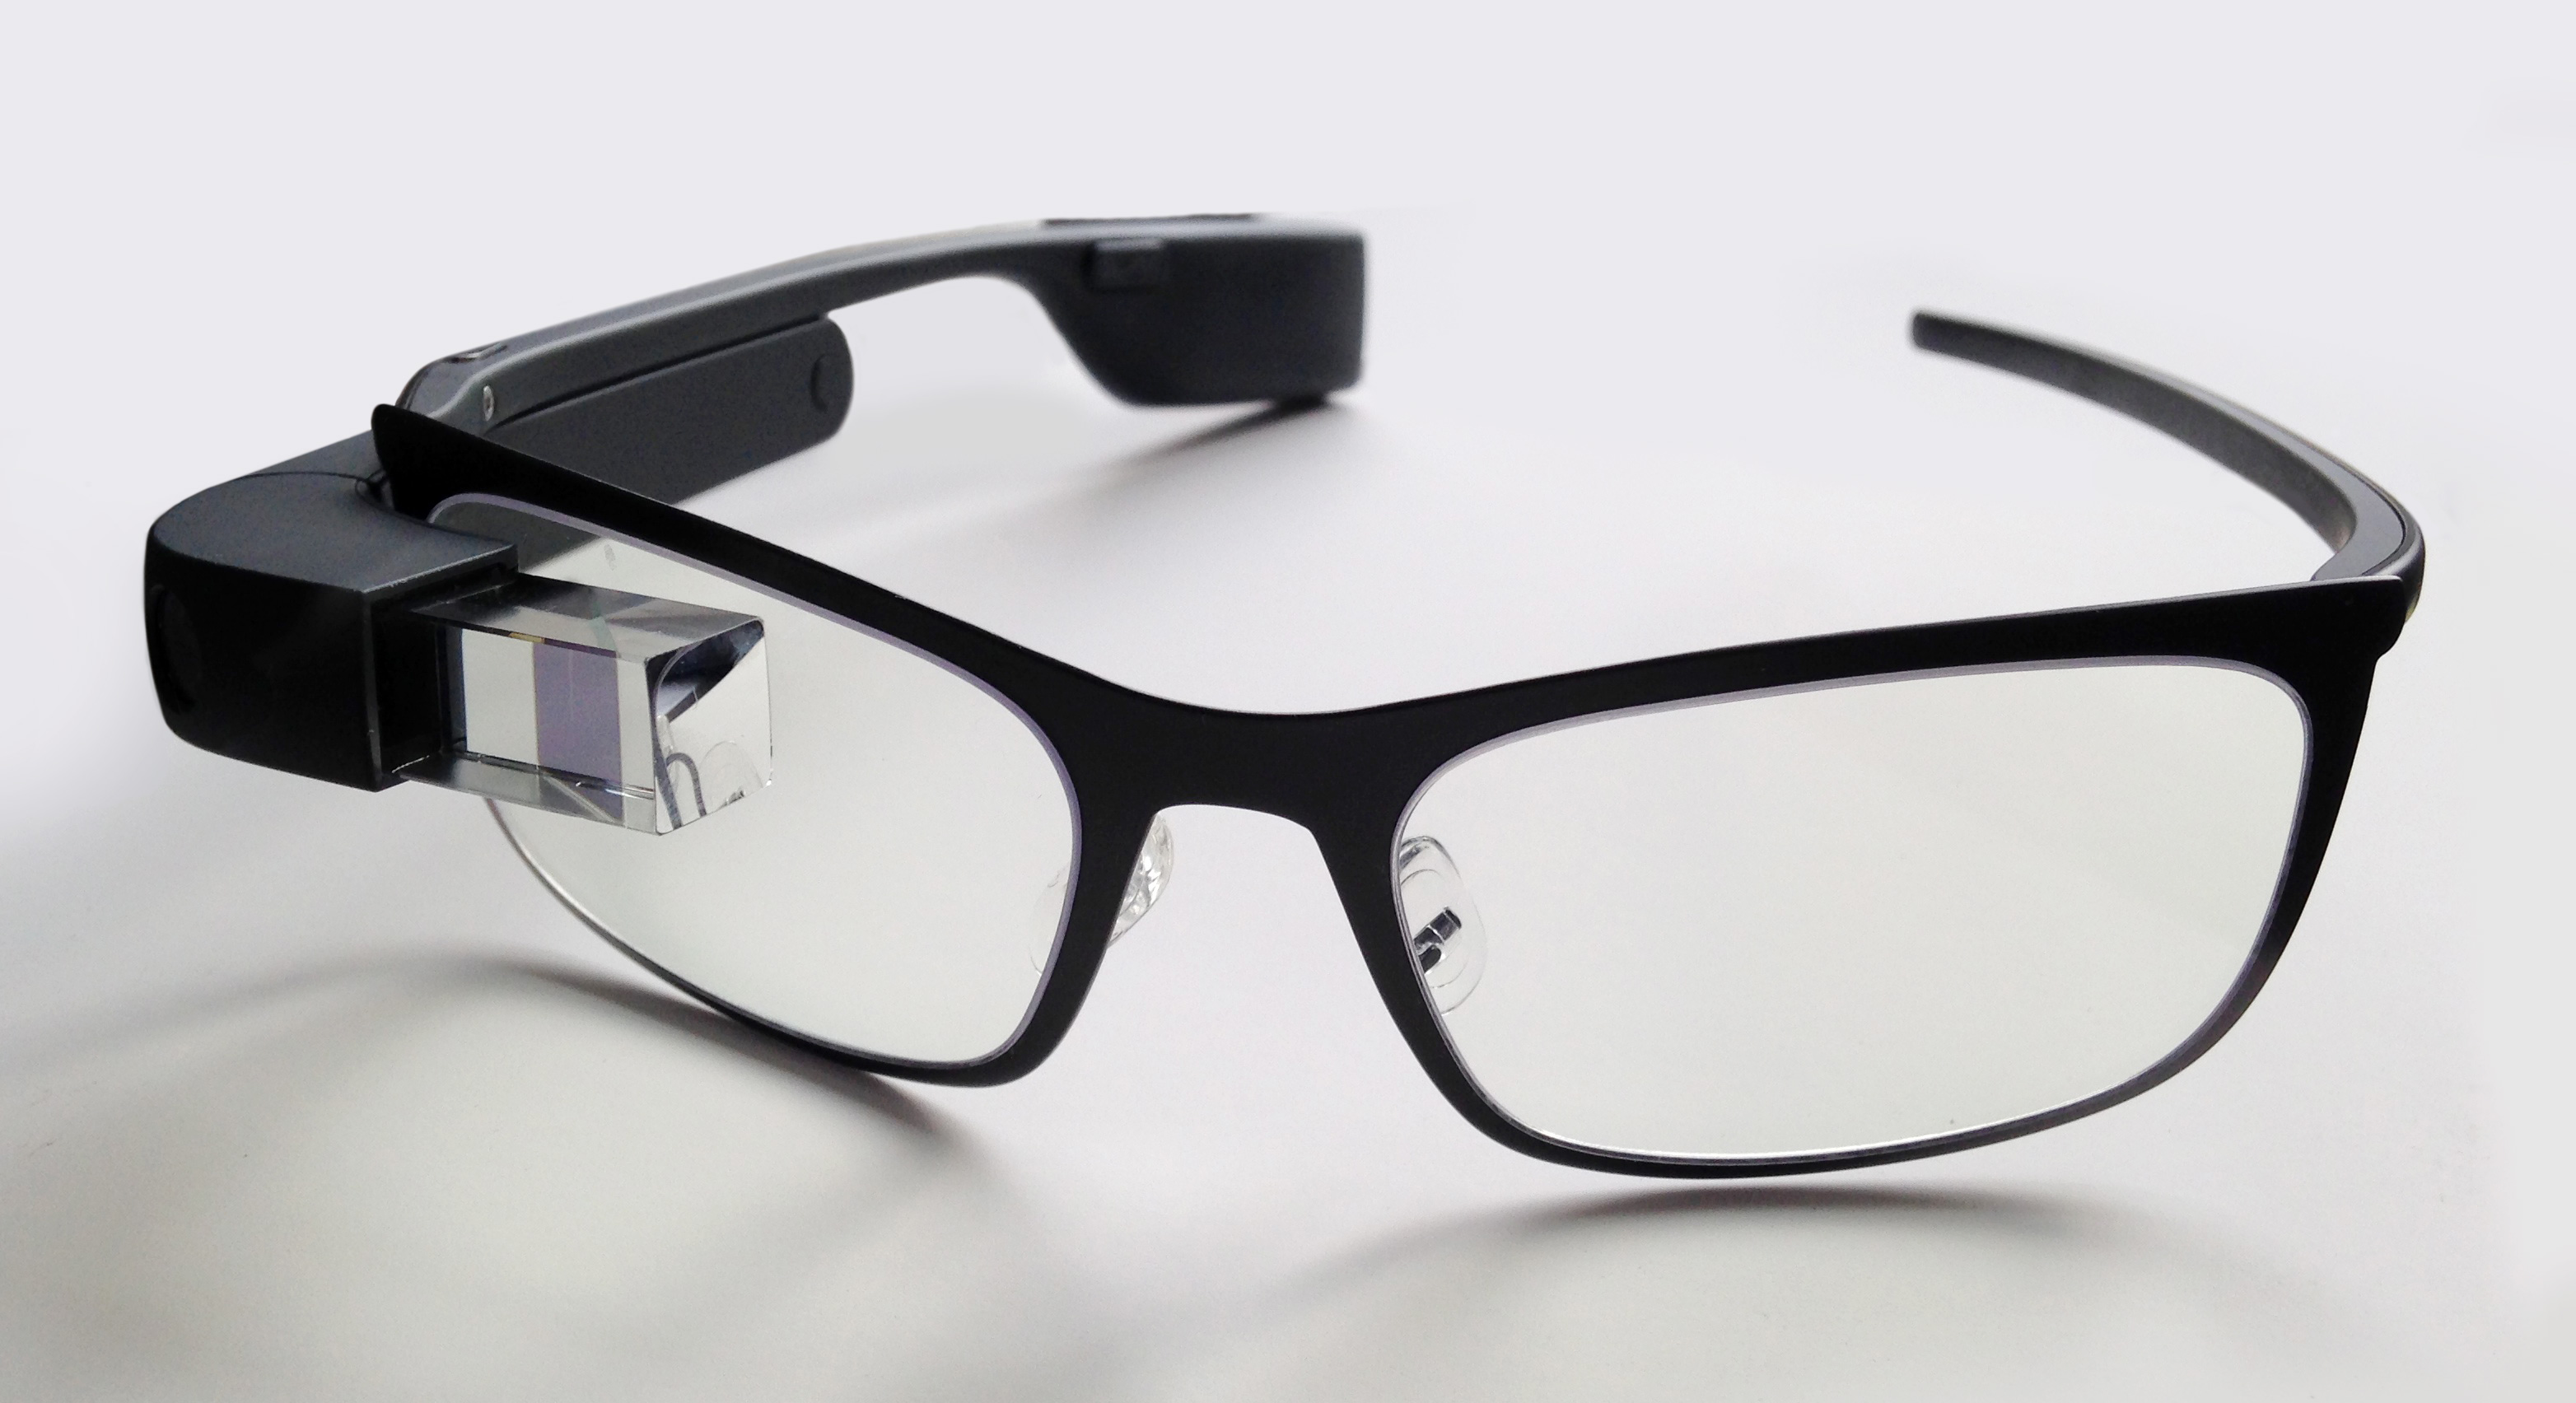 d8a916e17a6 Google Starts Sending Out Google Glass 2 Prototypes To Select Manufacturing  Partners